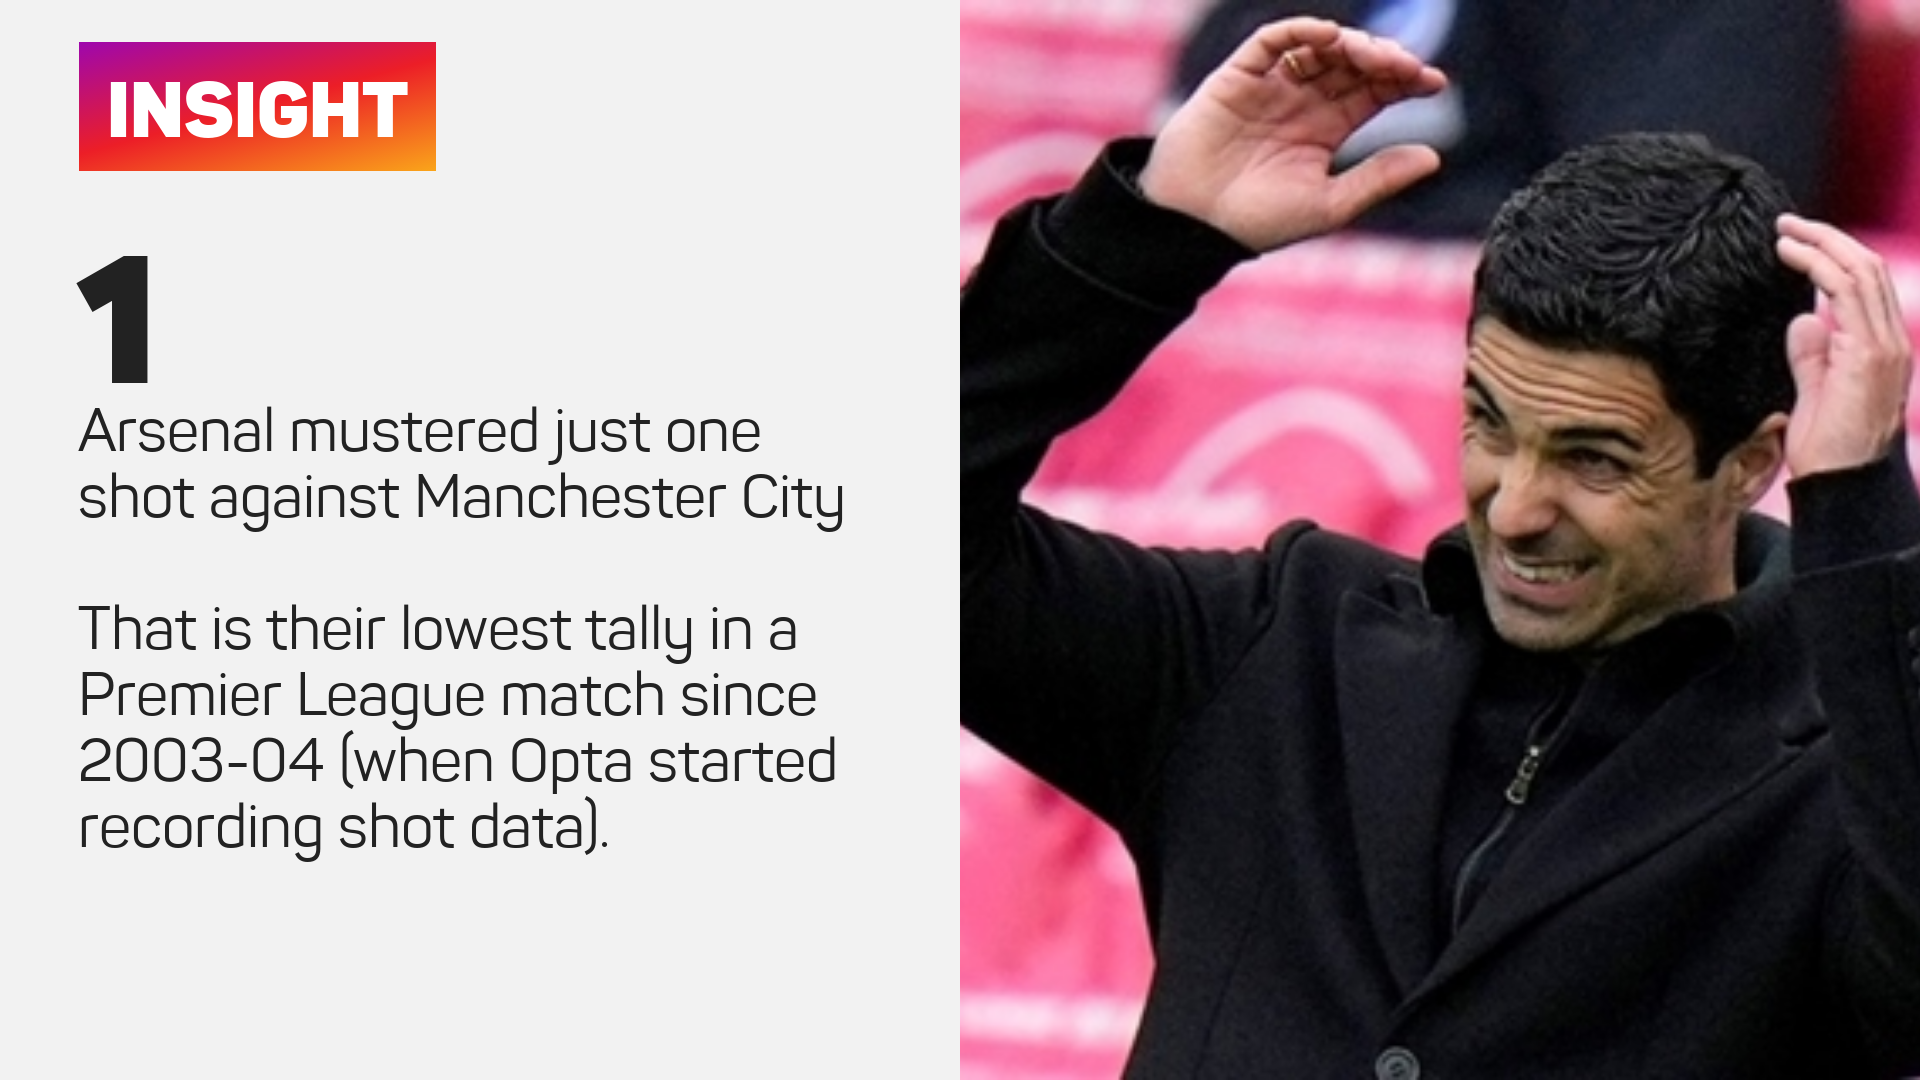 Arsenal had just one shot against Manchester City